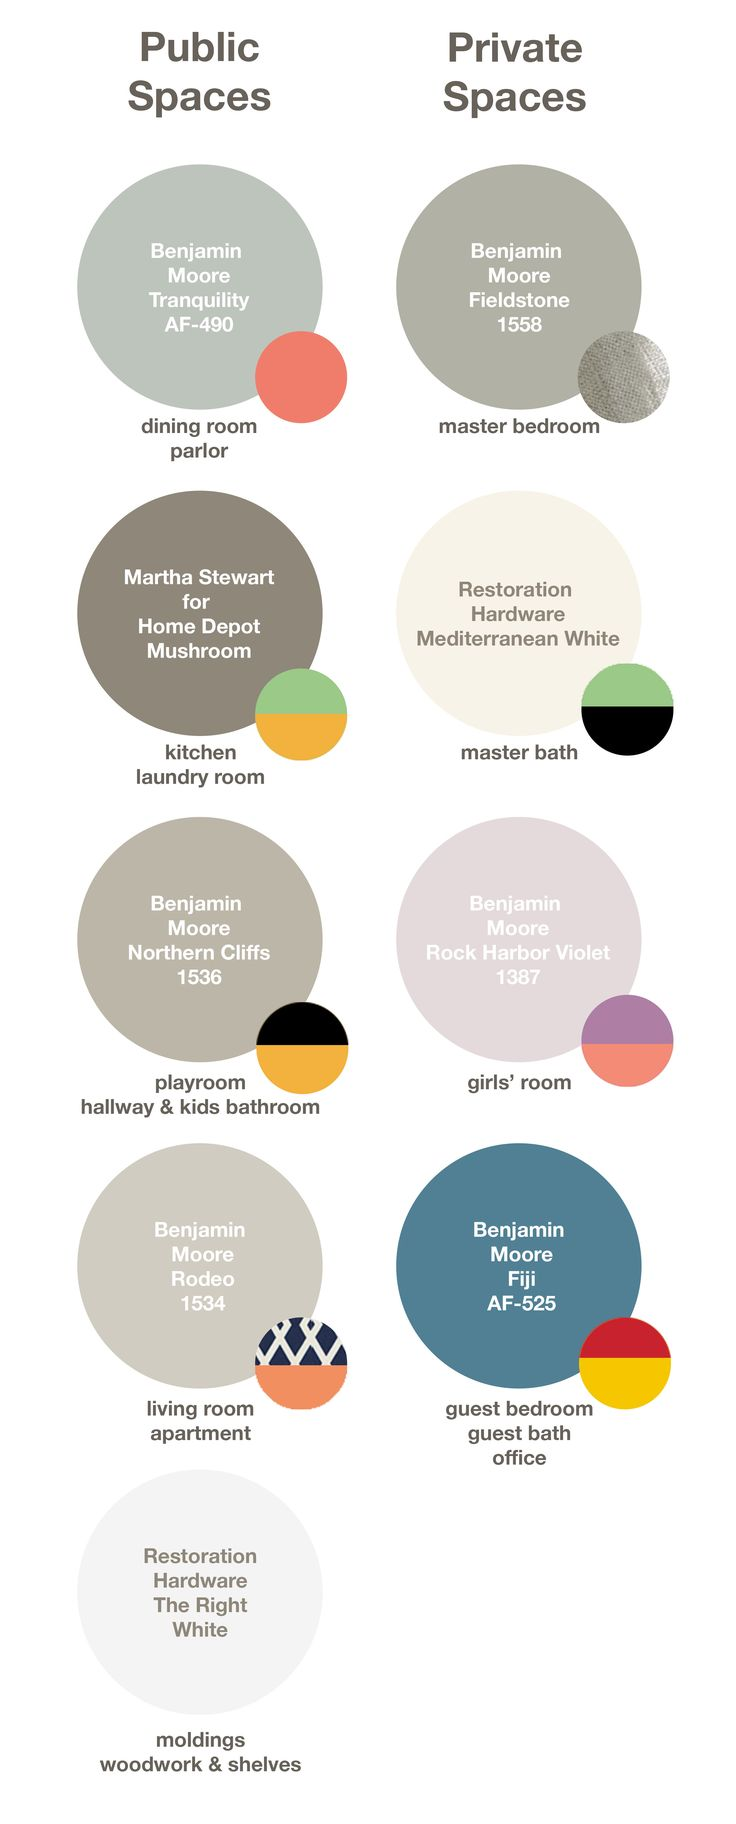 Benjamin Moore – Tranquility AF-490| Martha Stewart for Home Depot in Mushroom | Benjamin Moore – Northern Cliffs 1536 | Benjamin Moore – Rodeo 1534 | Benjamin Moore – Fieldstone 1558 | Restoration Hardware – Mediterranean White | Benjamin Moore – Rock Harbor Violet 1387 | Benjamin Moore – Fiji AF-525